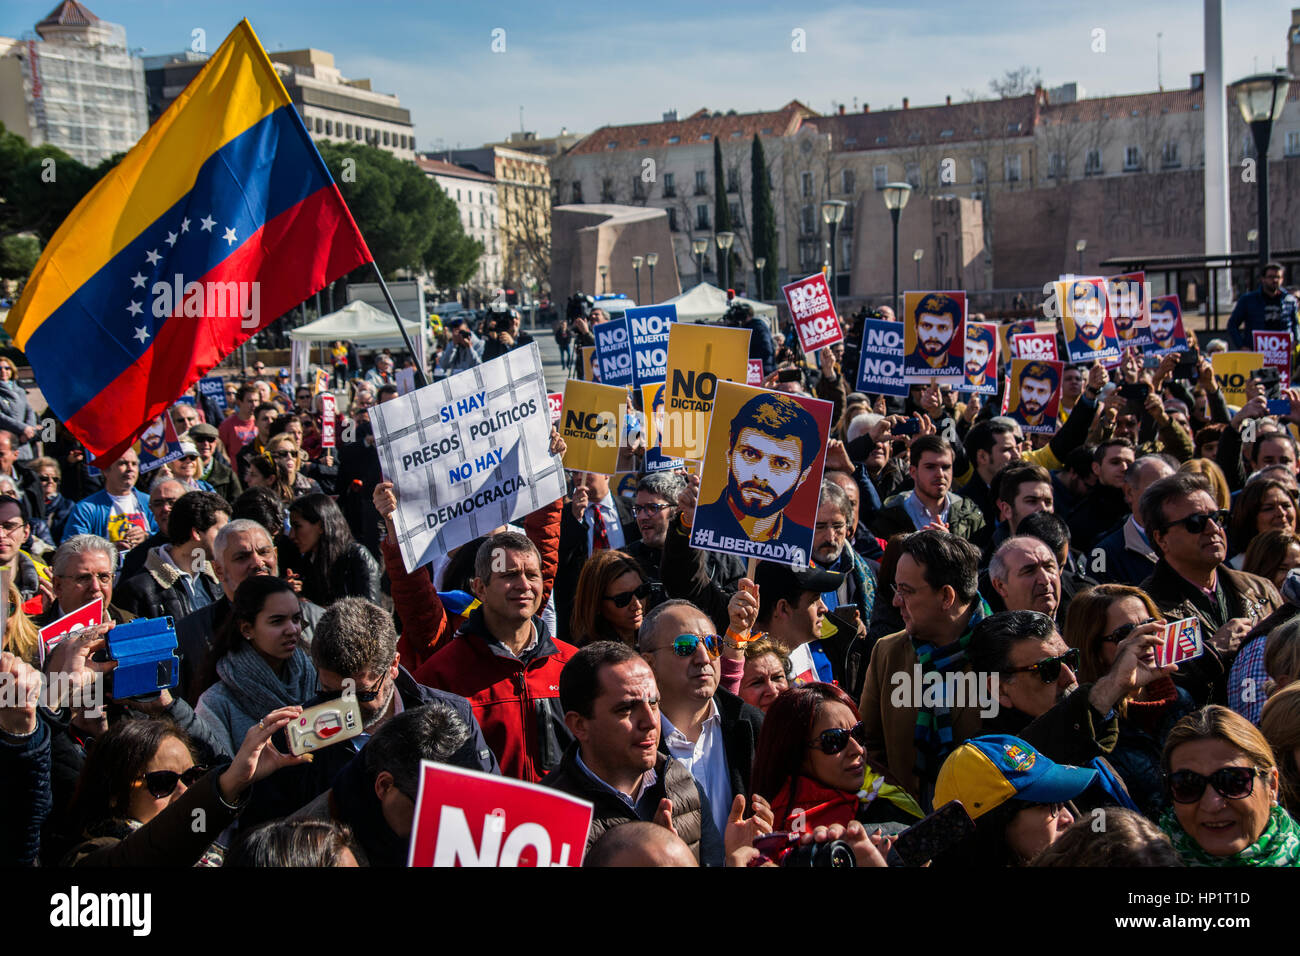 Madrid, Spain. 18th Feb, 2017. People protesting demanding the release of Leopoldo Lopez and political prisoners Stock Photo